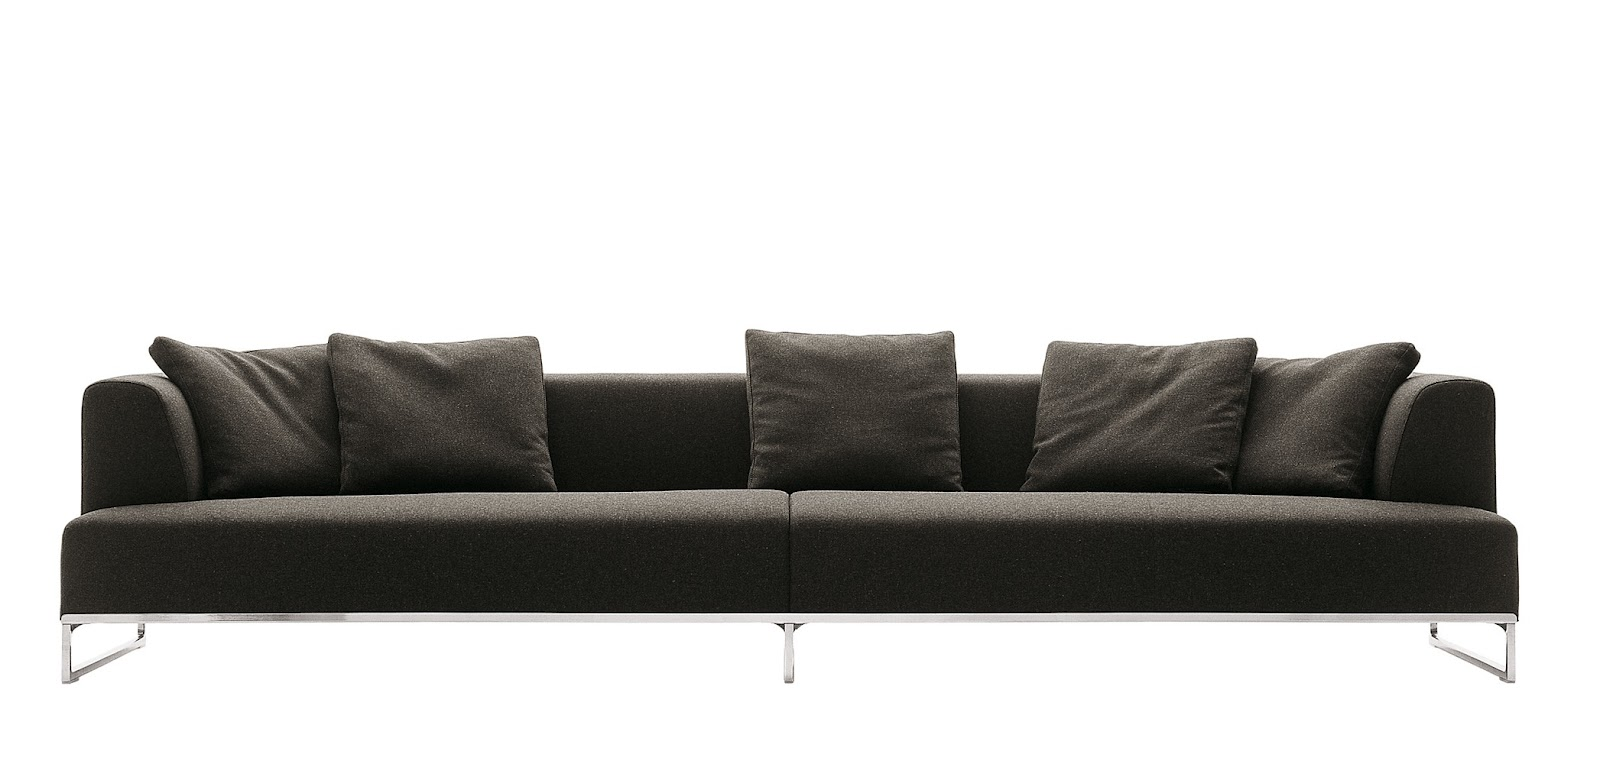 solo sofa by b b italia designer furniture fitted furniture outdoor furniture office. Black Bedroom Furniture Sets. Home Design Ideas